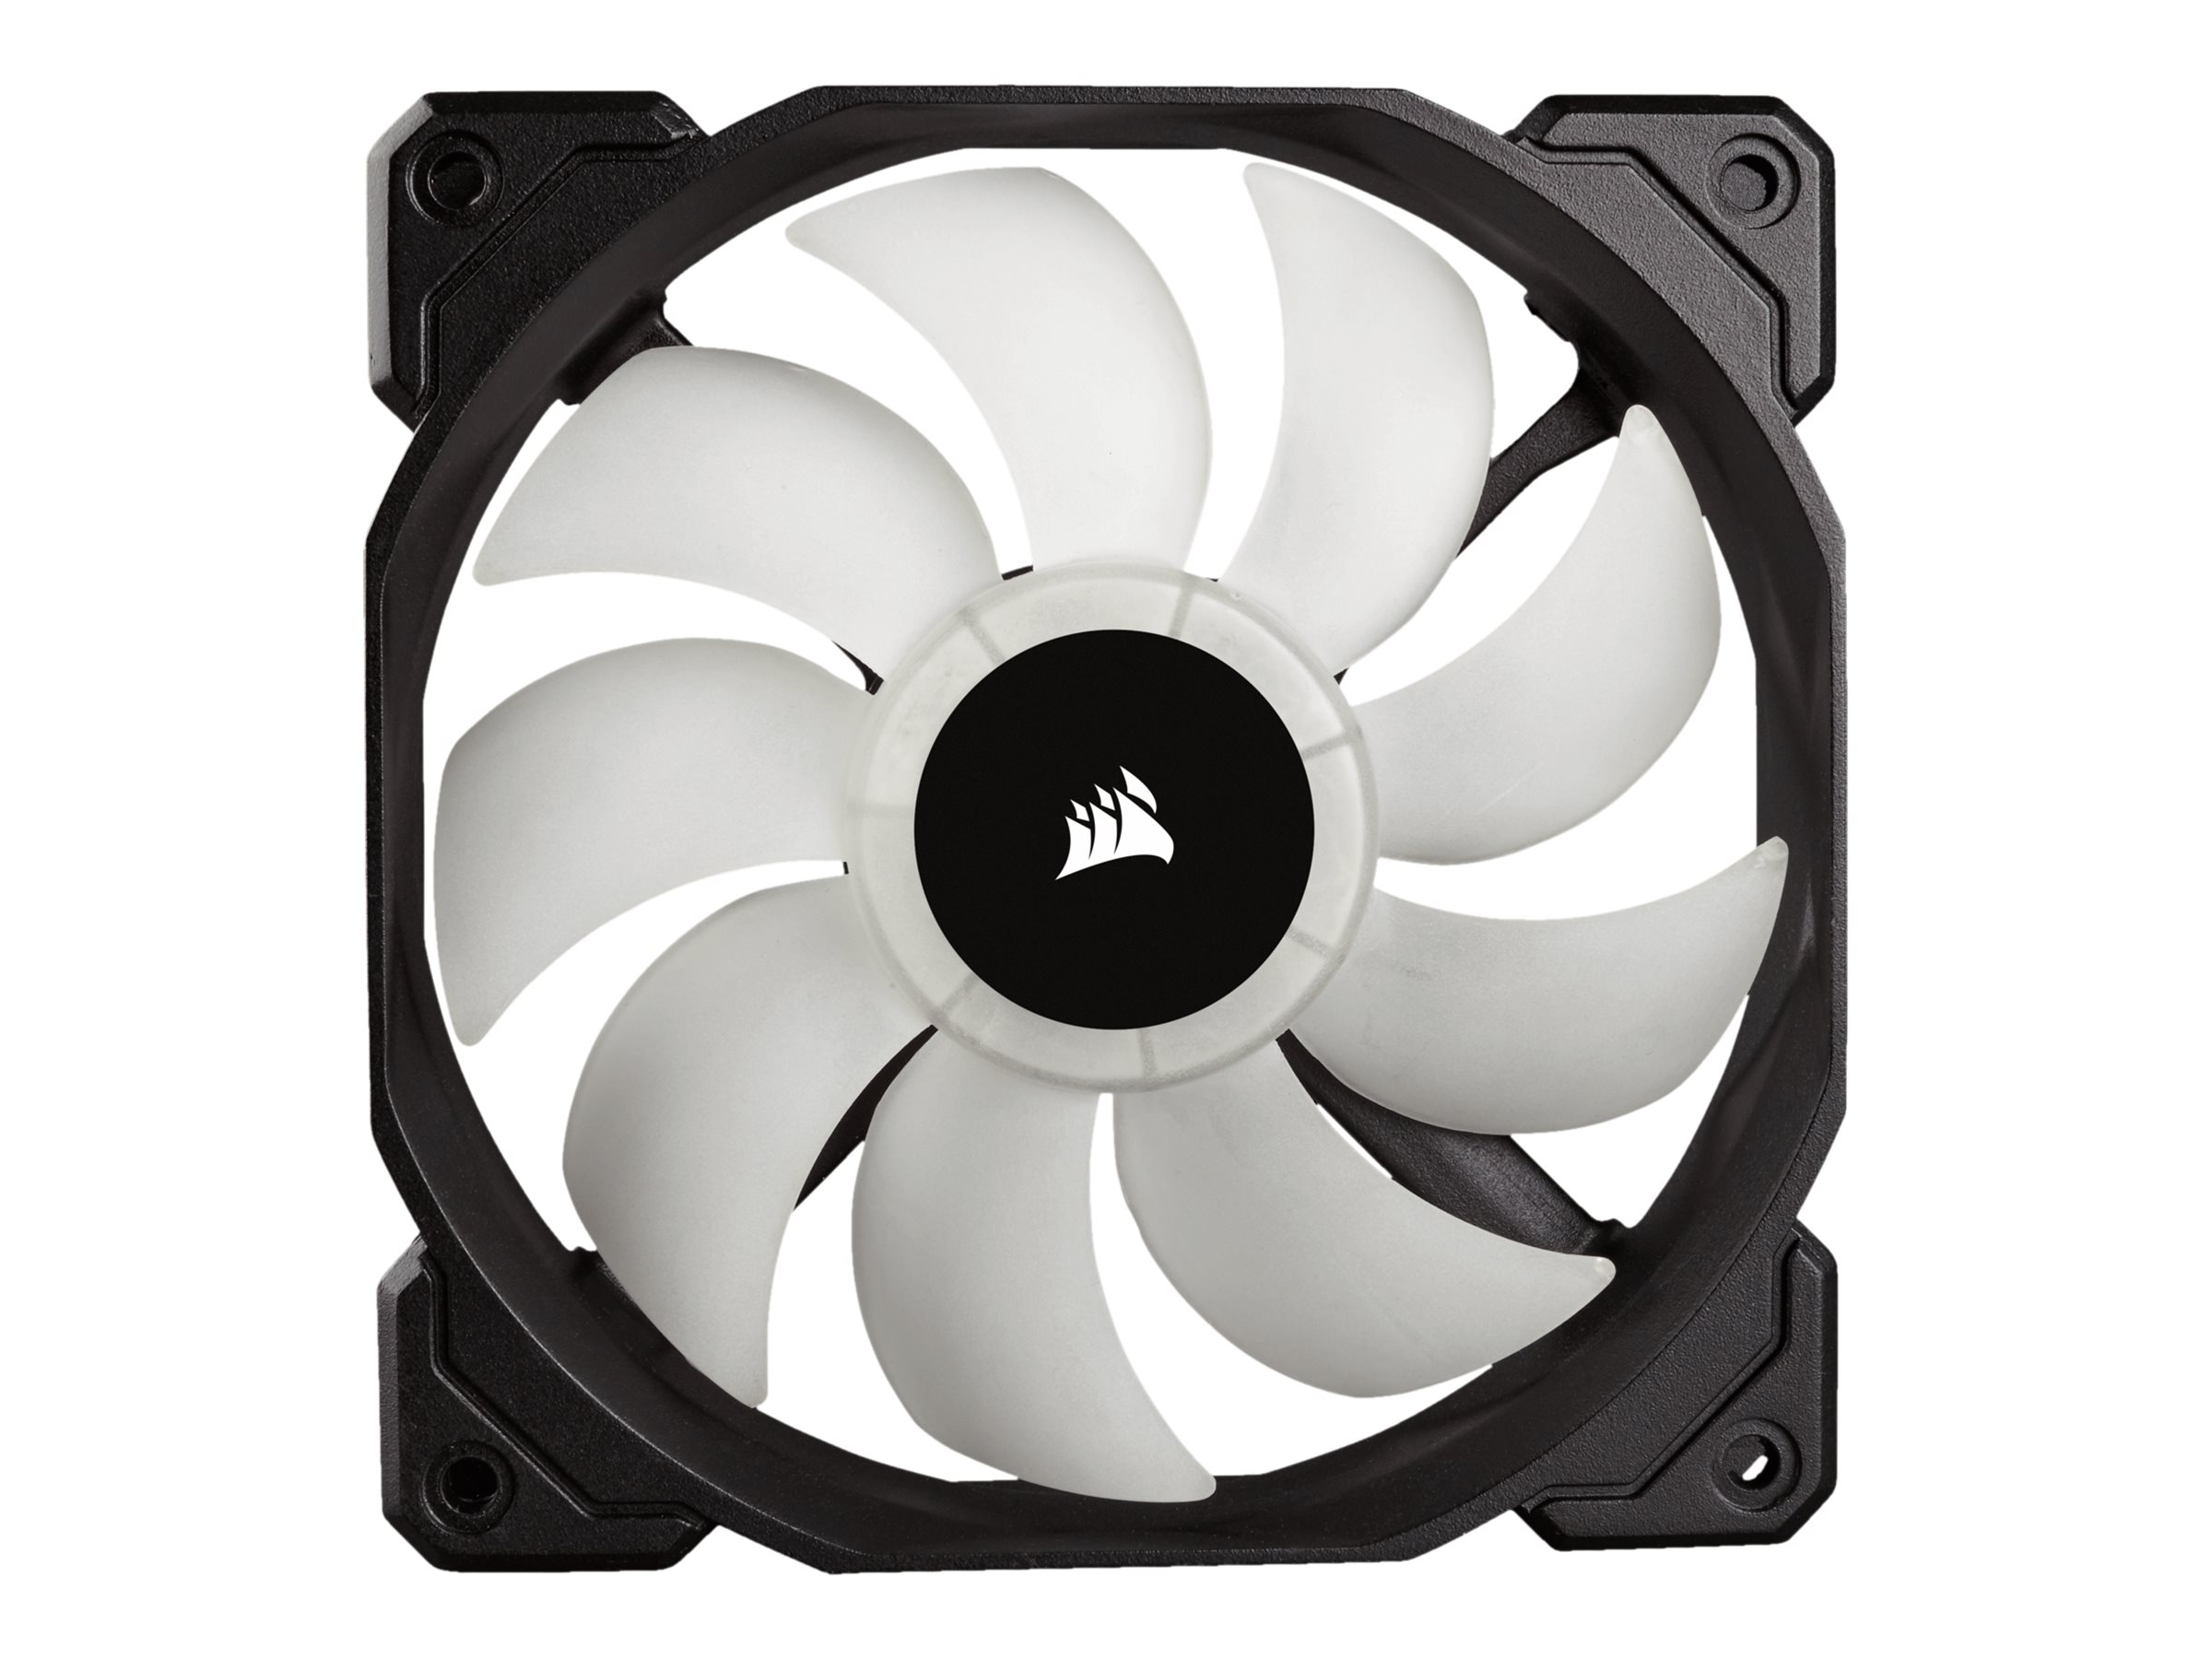 Corsair CO-9050059-WW Image 1